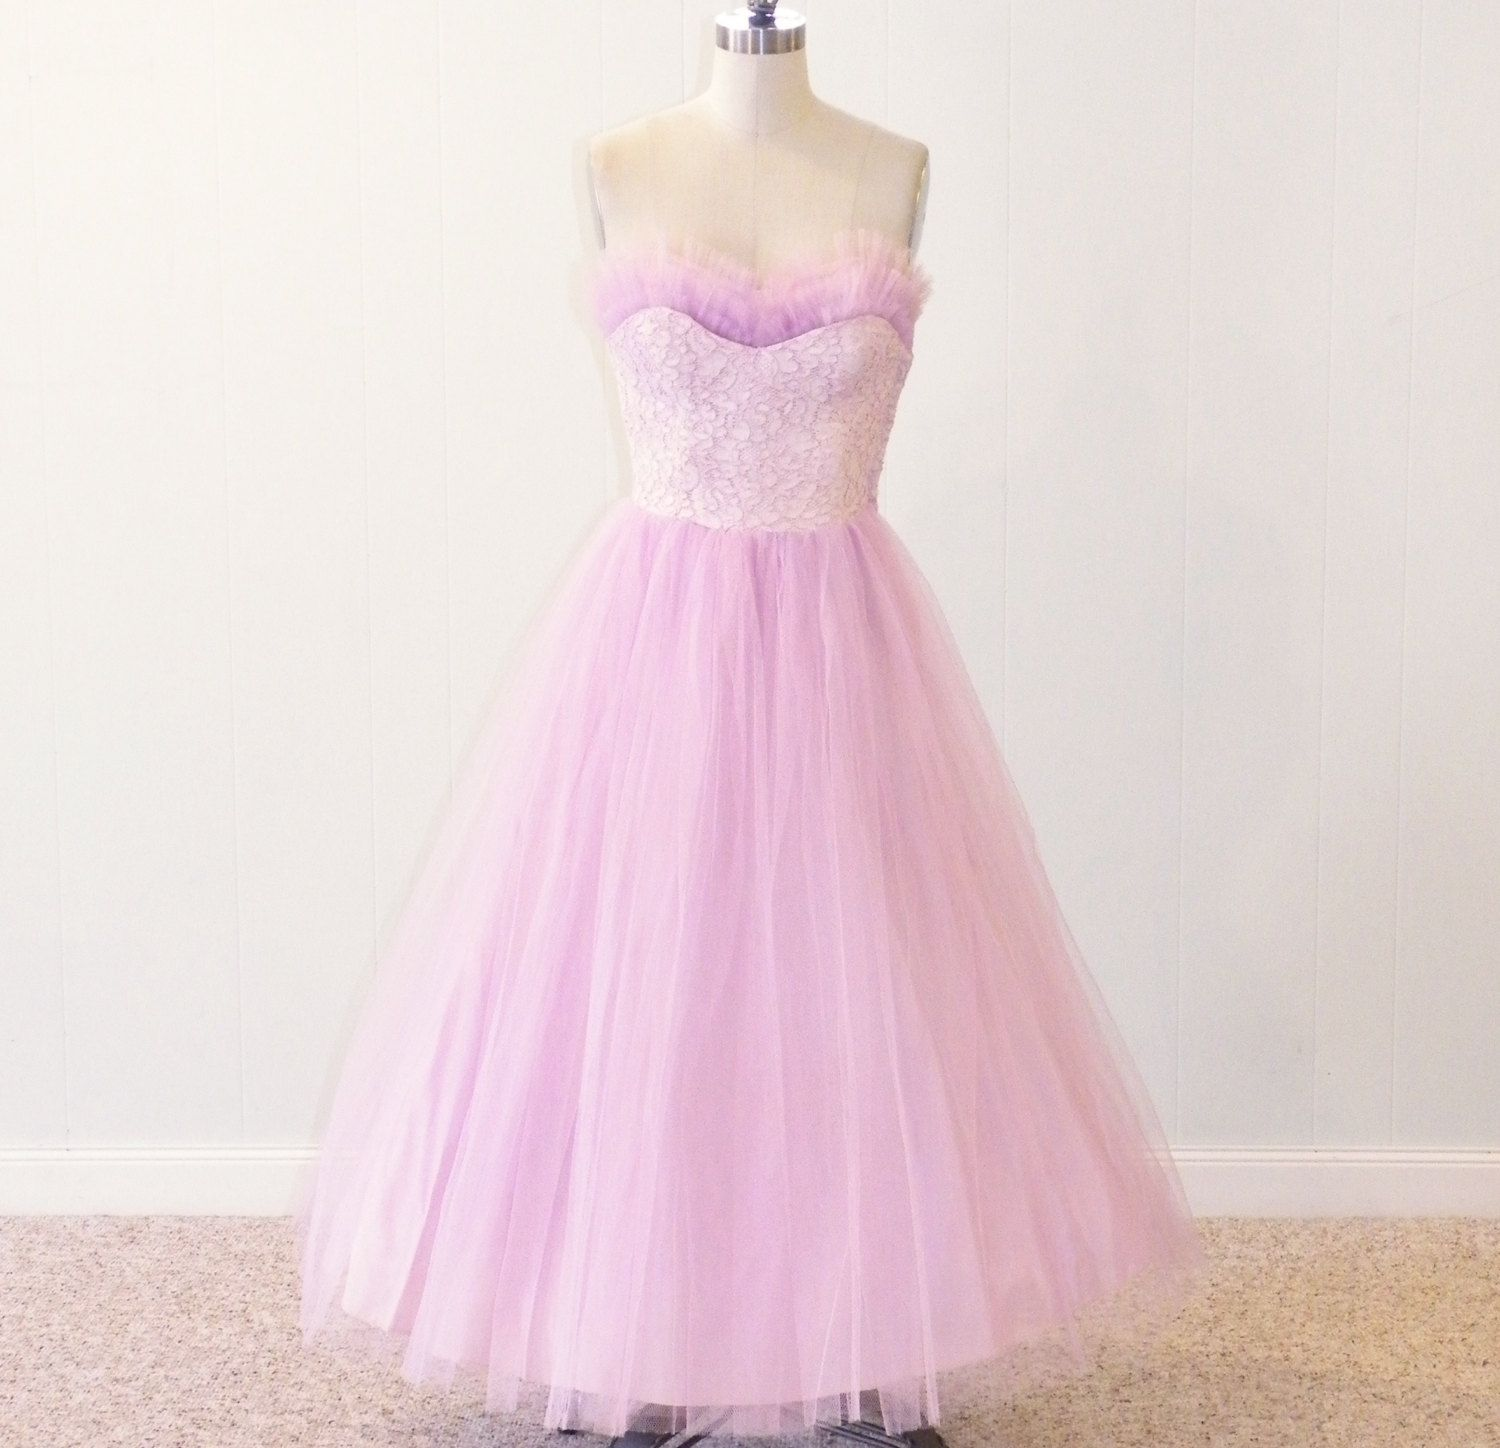 Vintage 50s prom dress 1950s lilac tulle lace strapless party vintage 50s prom dress 1950s lilac tulle lace strapless party dress wedding bridesmaid dress xs s ombrellifo Choice Image